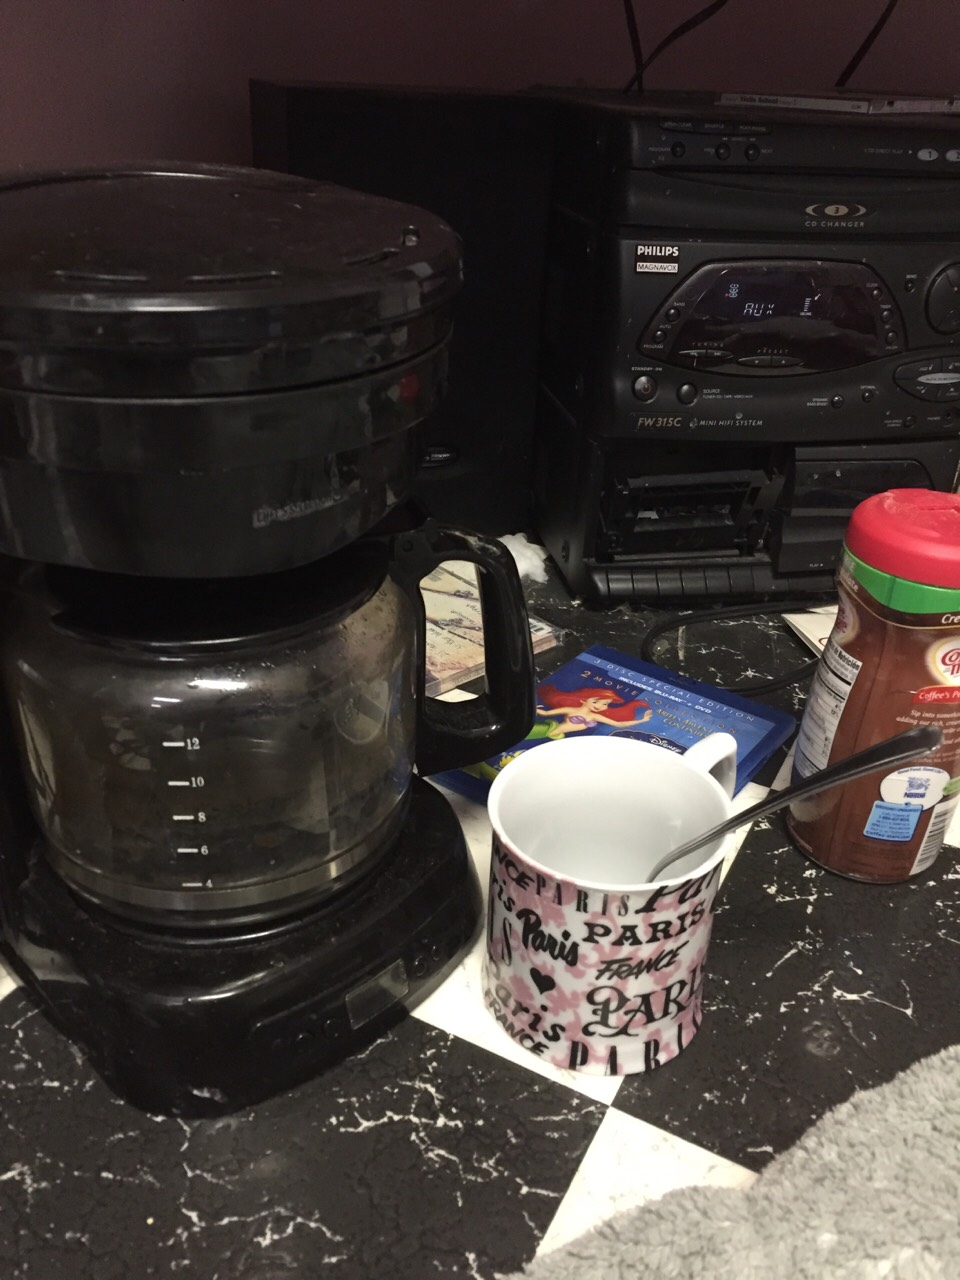 I took the coffee maker and got a cup, spoon, and whatever coffee stuff to add. Which I use coffee mate and a bit of milk.